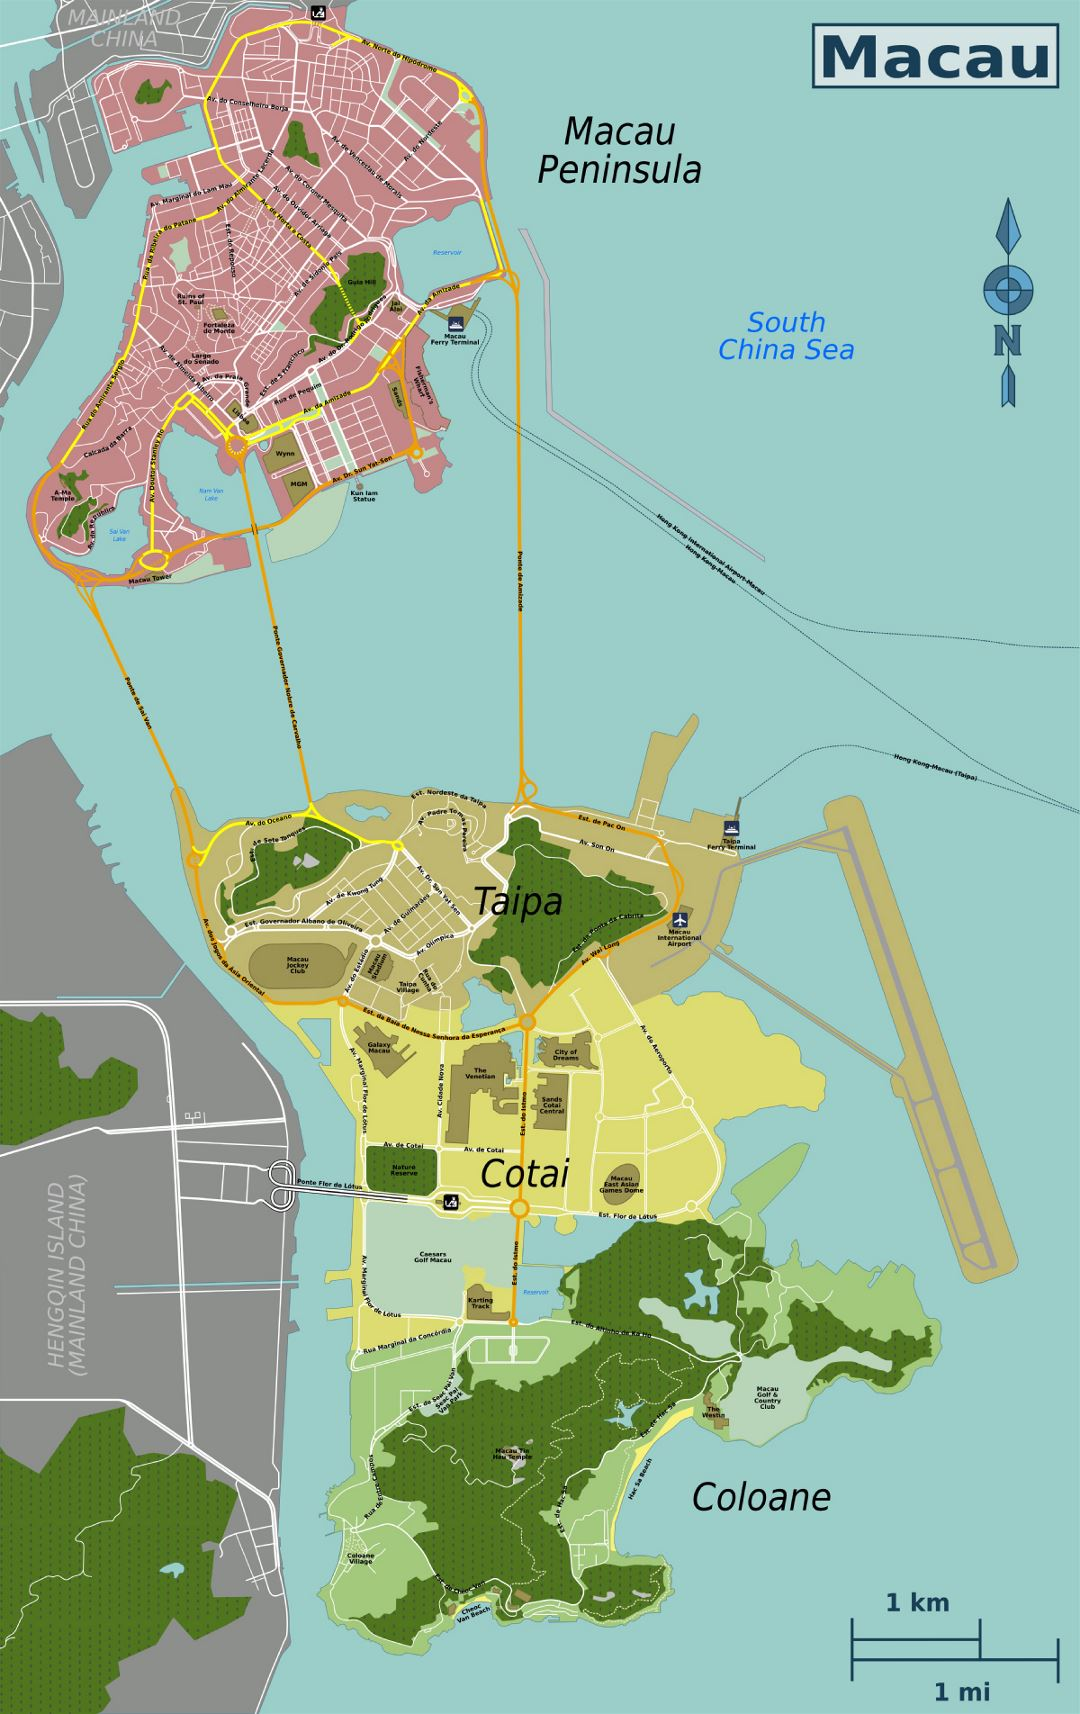 Detailed map of Macau